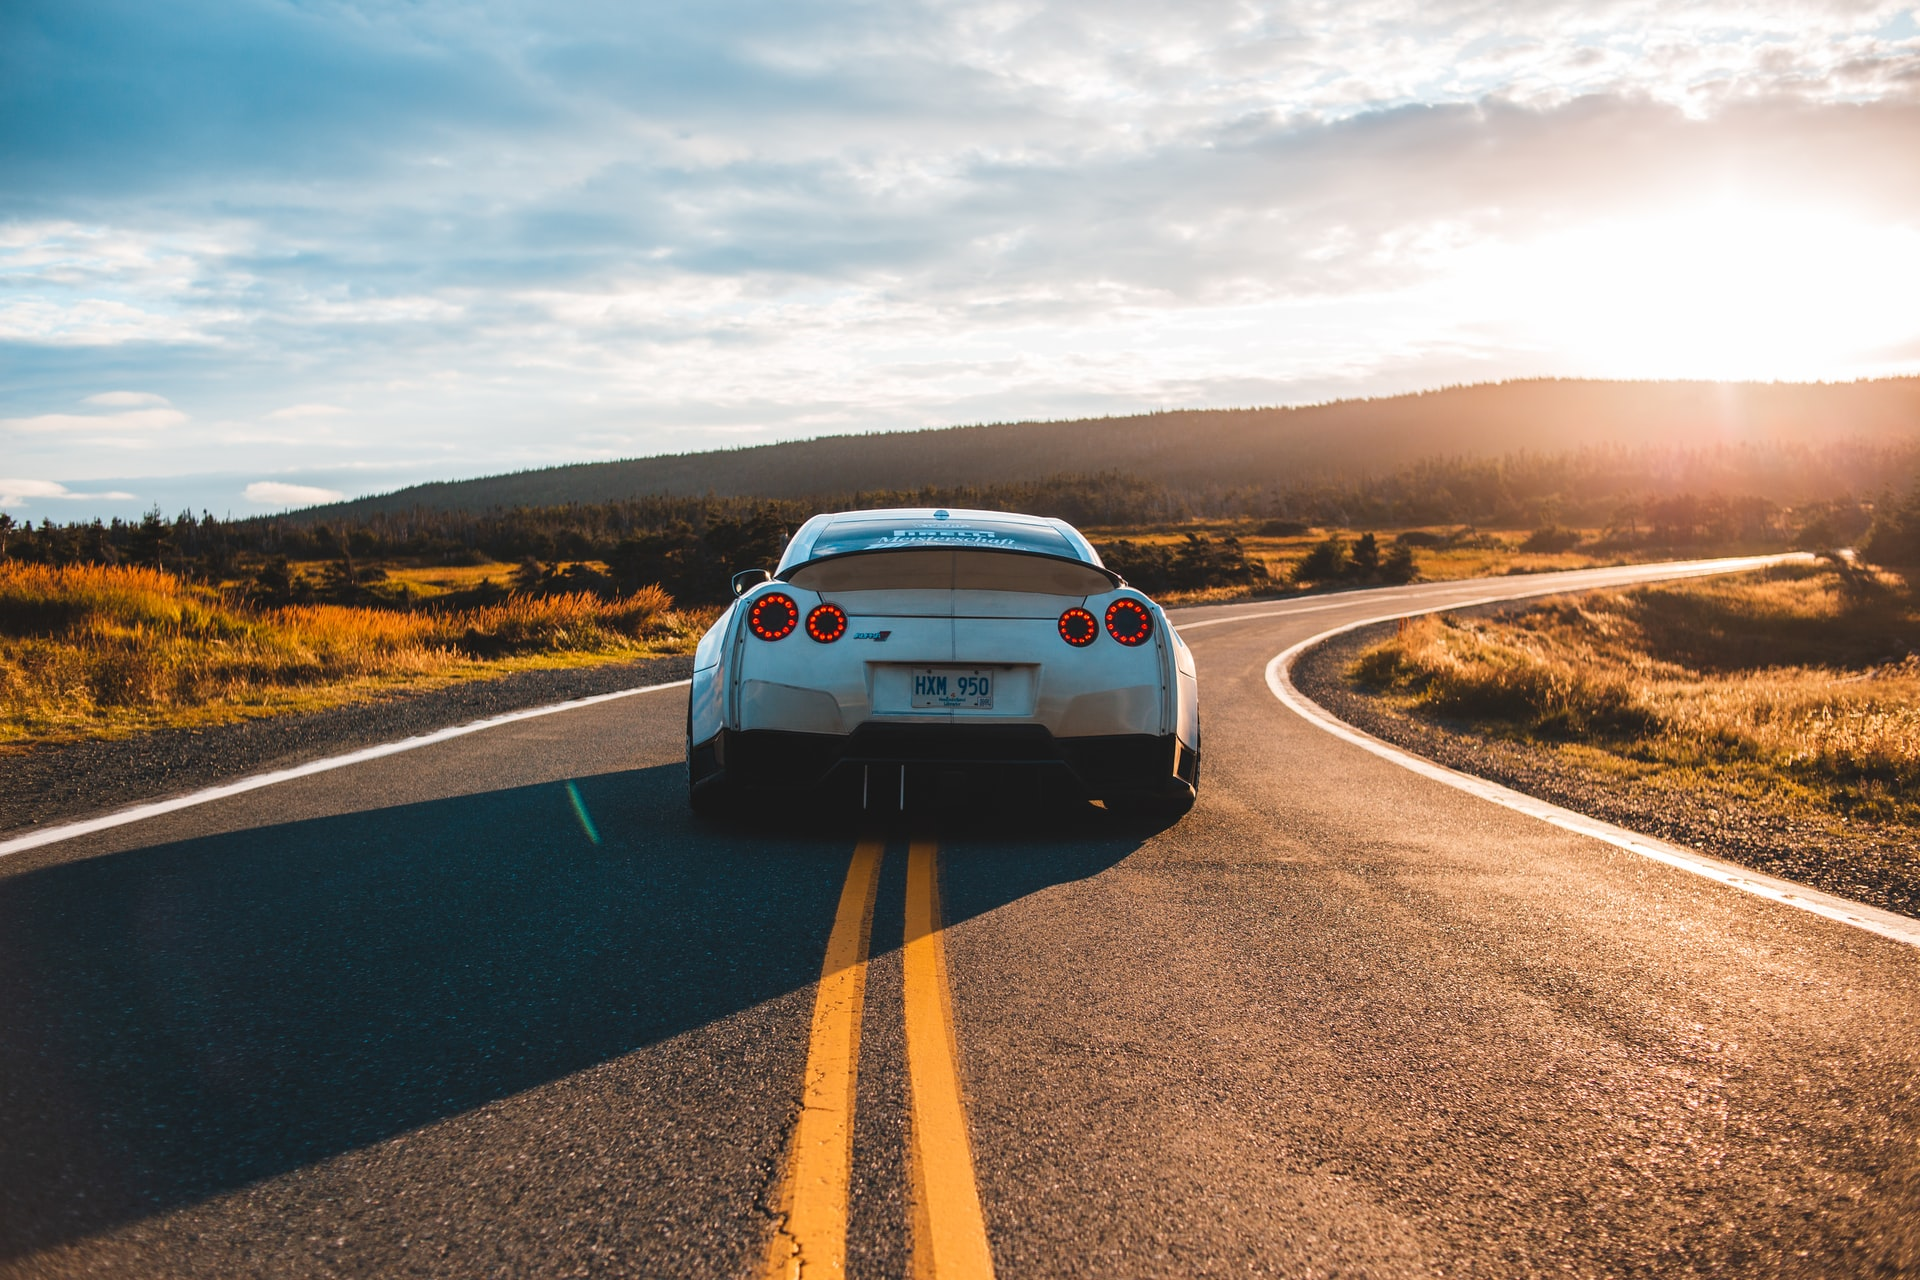 Planning a Cross-Country Road Trip on a Budget